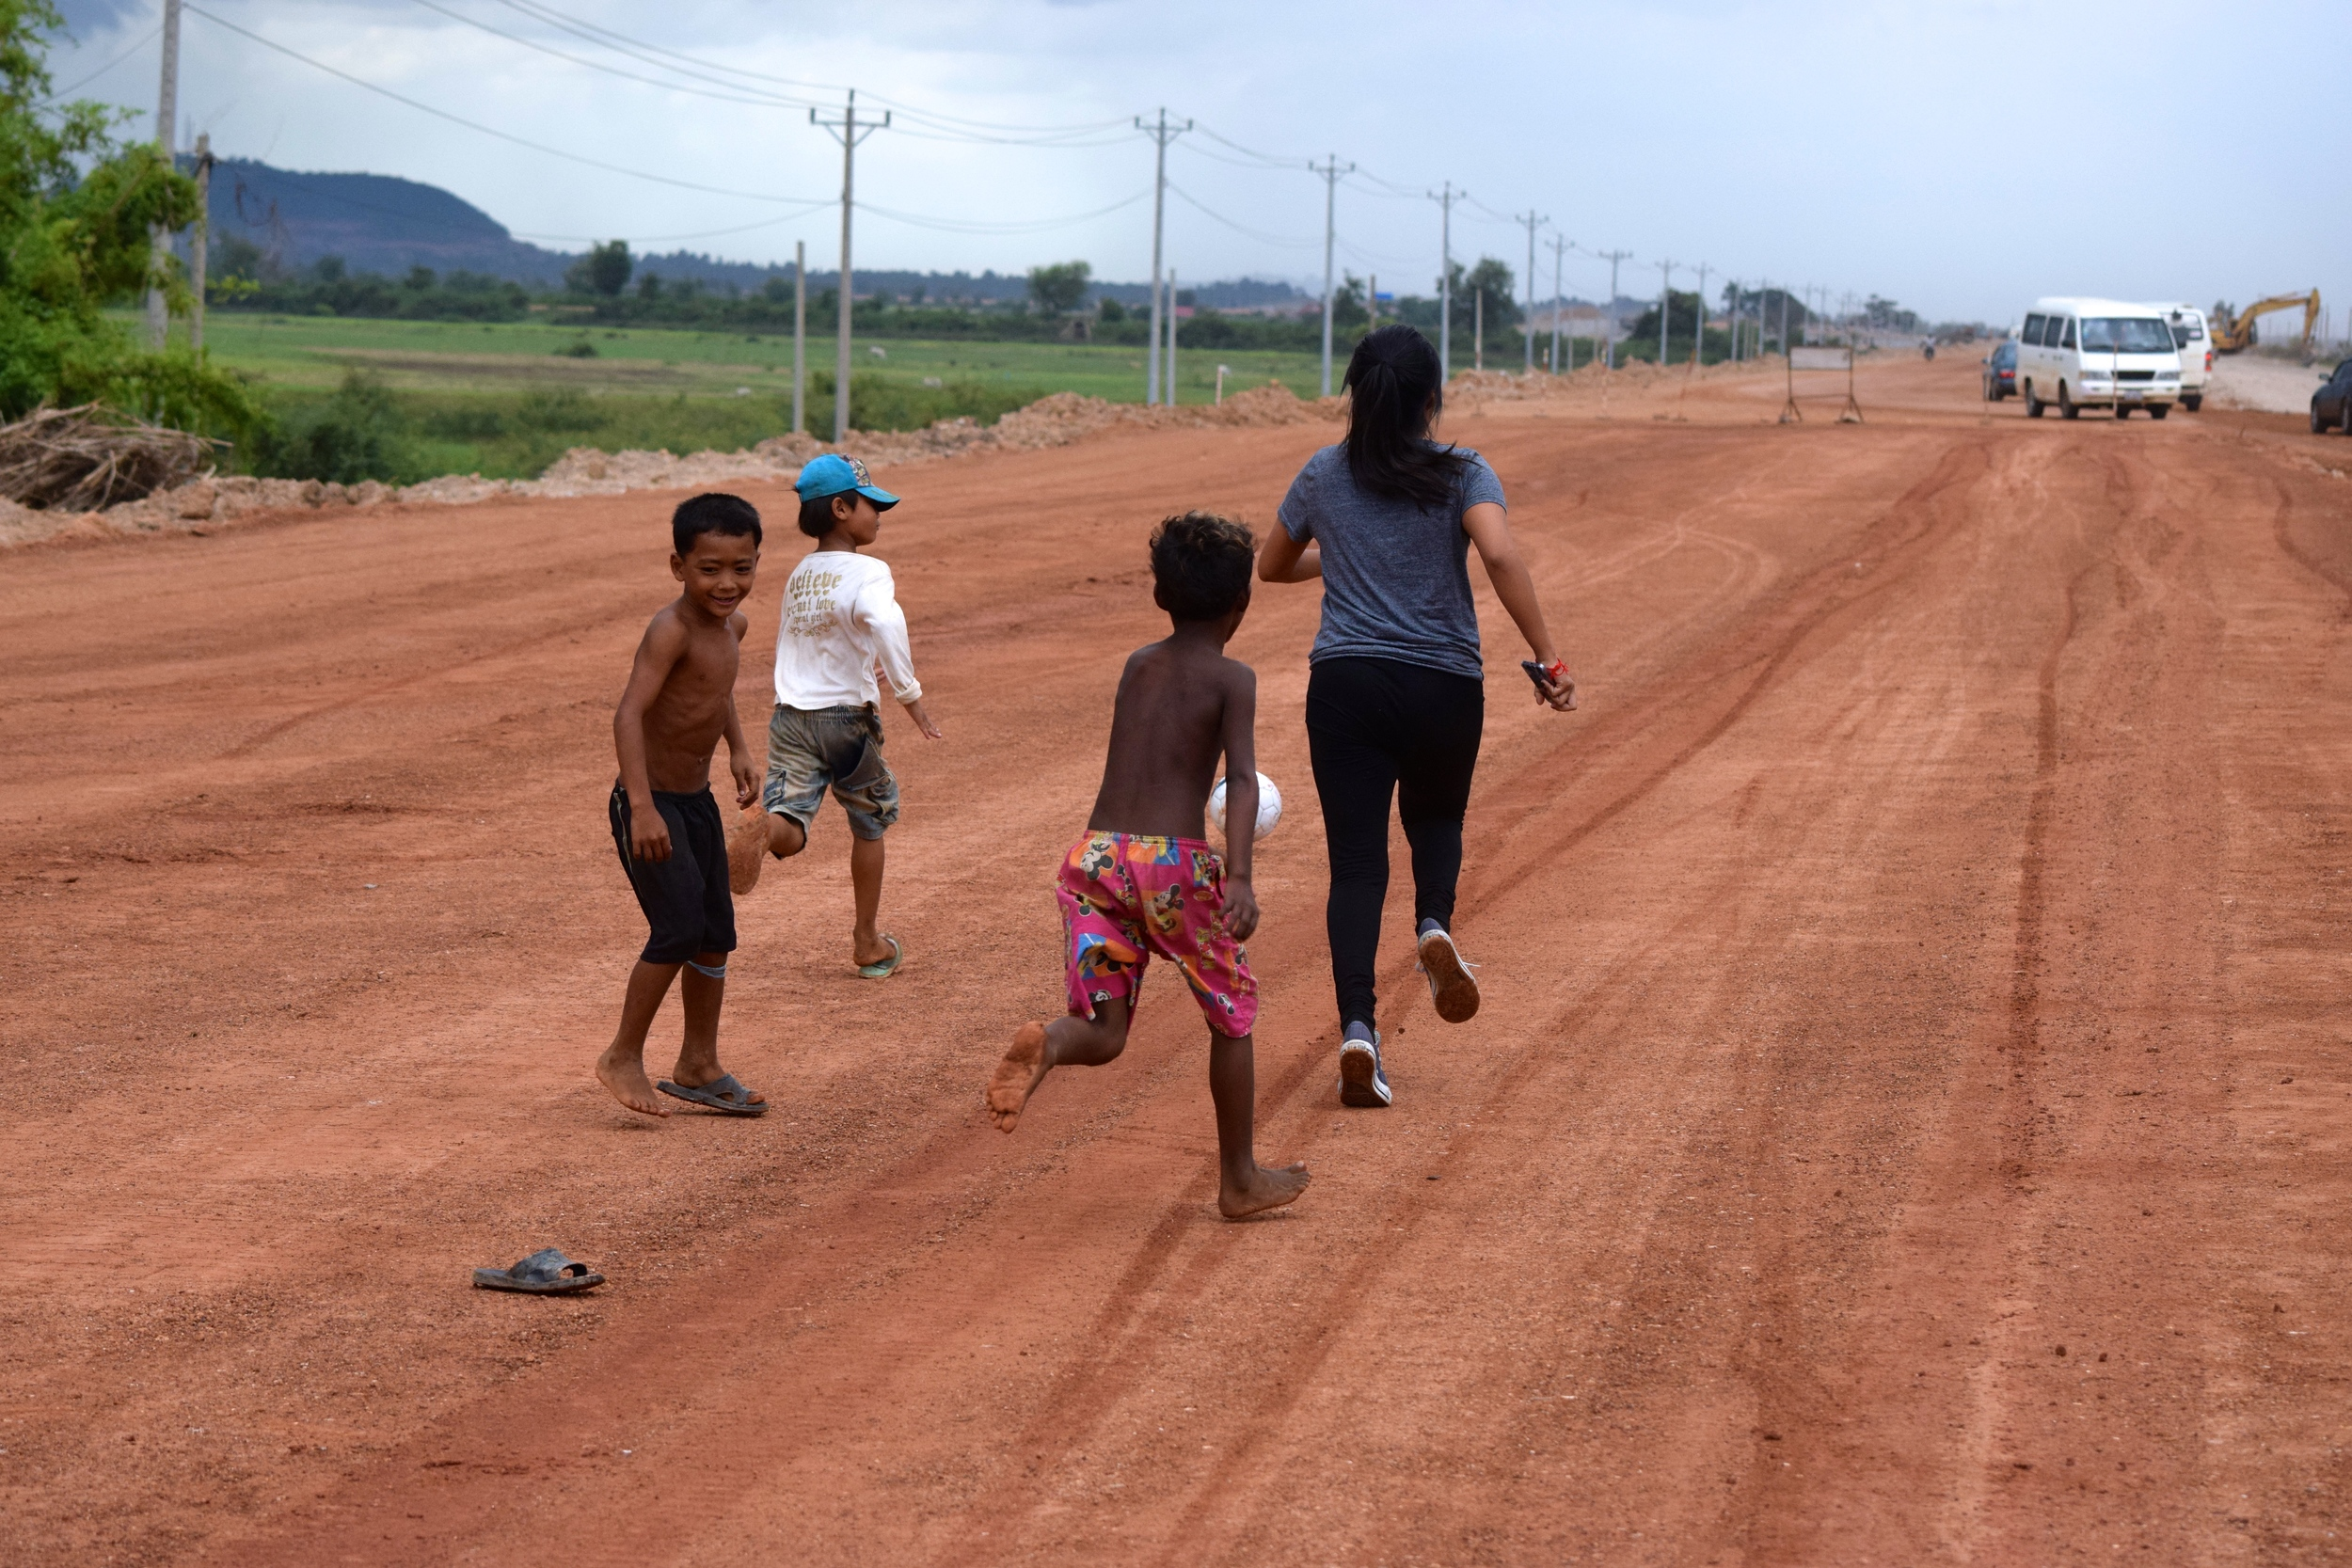 Playing soccer with the children on our way to Phnom Penh